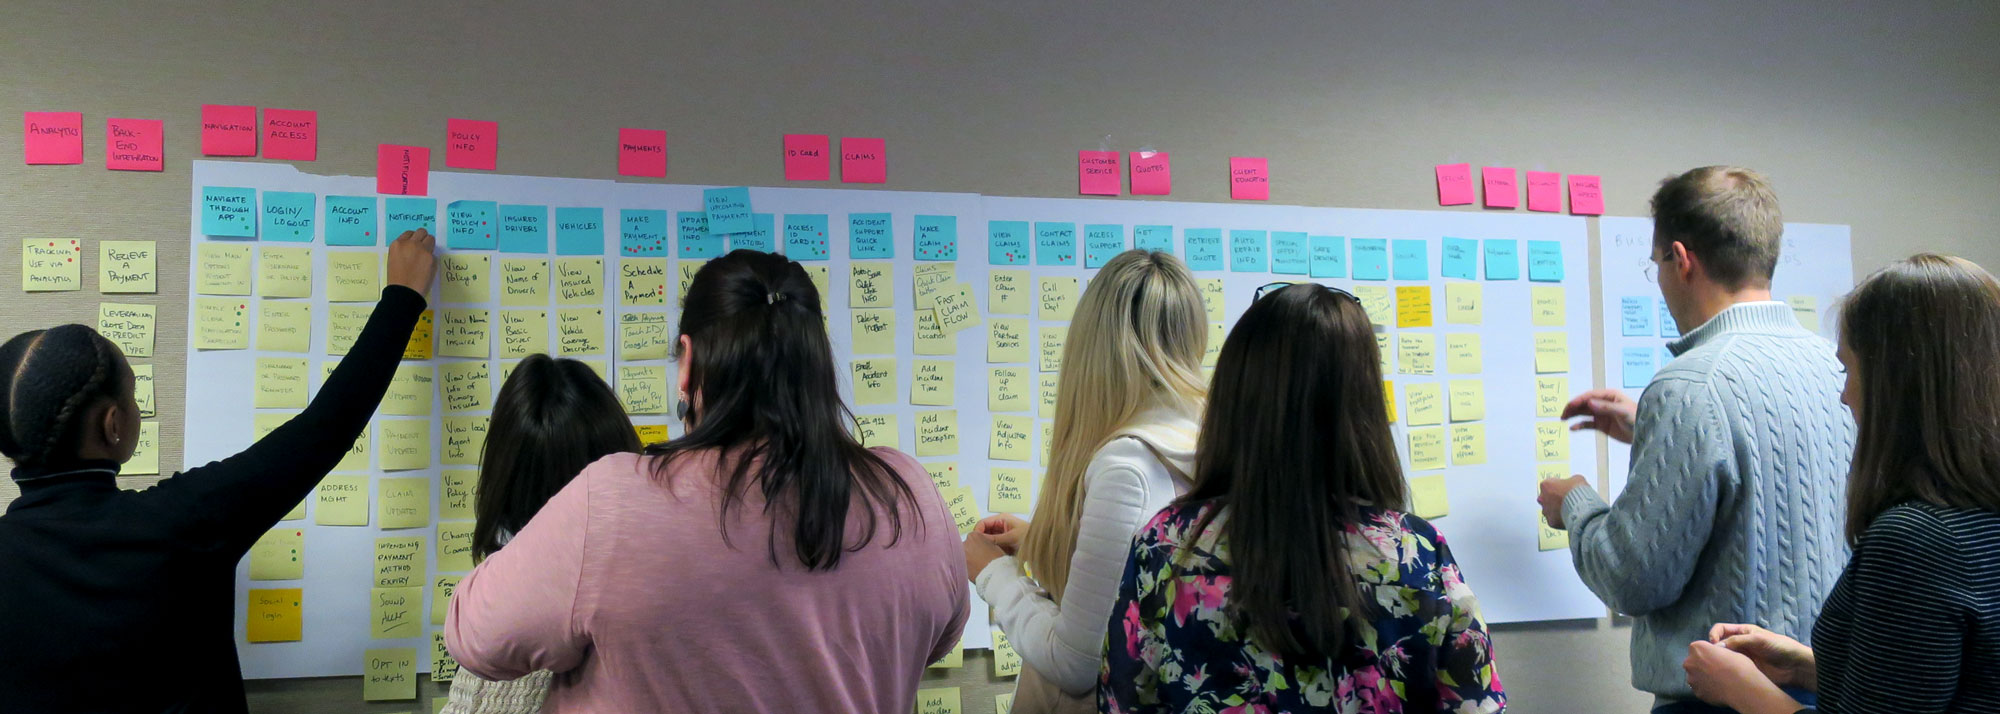 Story Mapping Workshop facilitated by Alex Schmidt, UX Strategist & Product Owner, Tigerspike